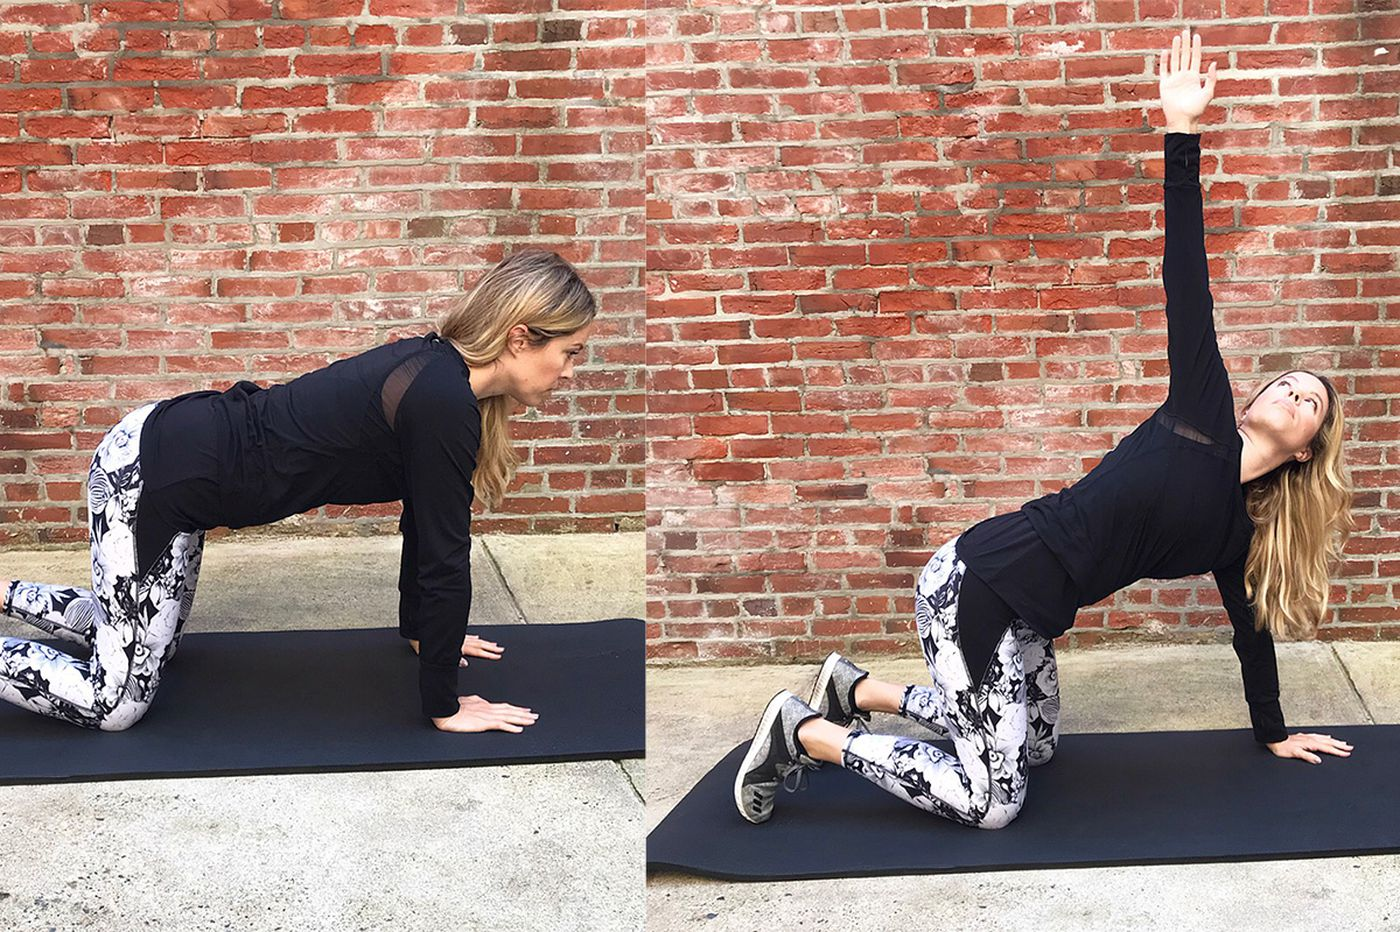 Fitness after 50: 4 exercises to improve your posture